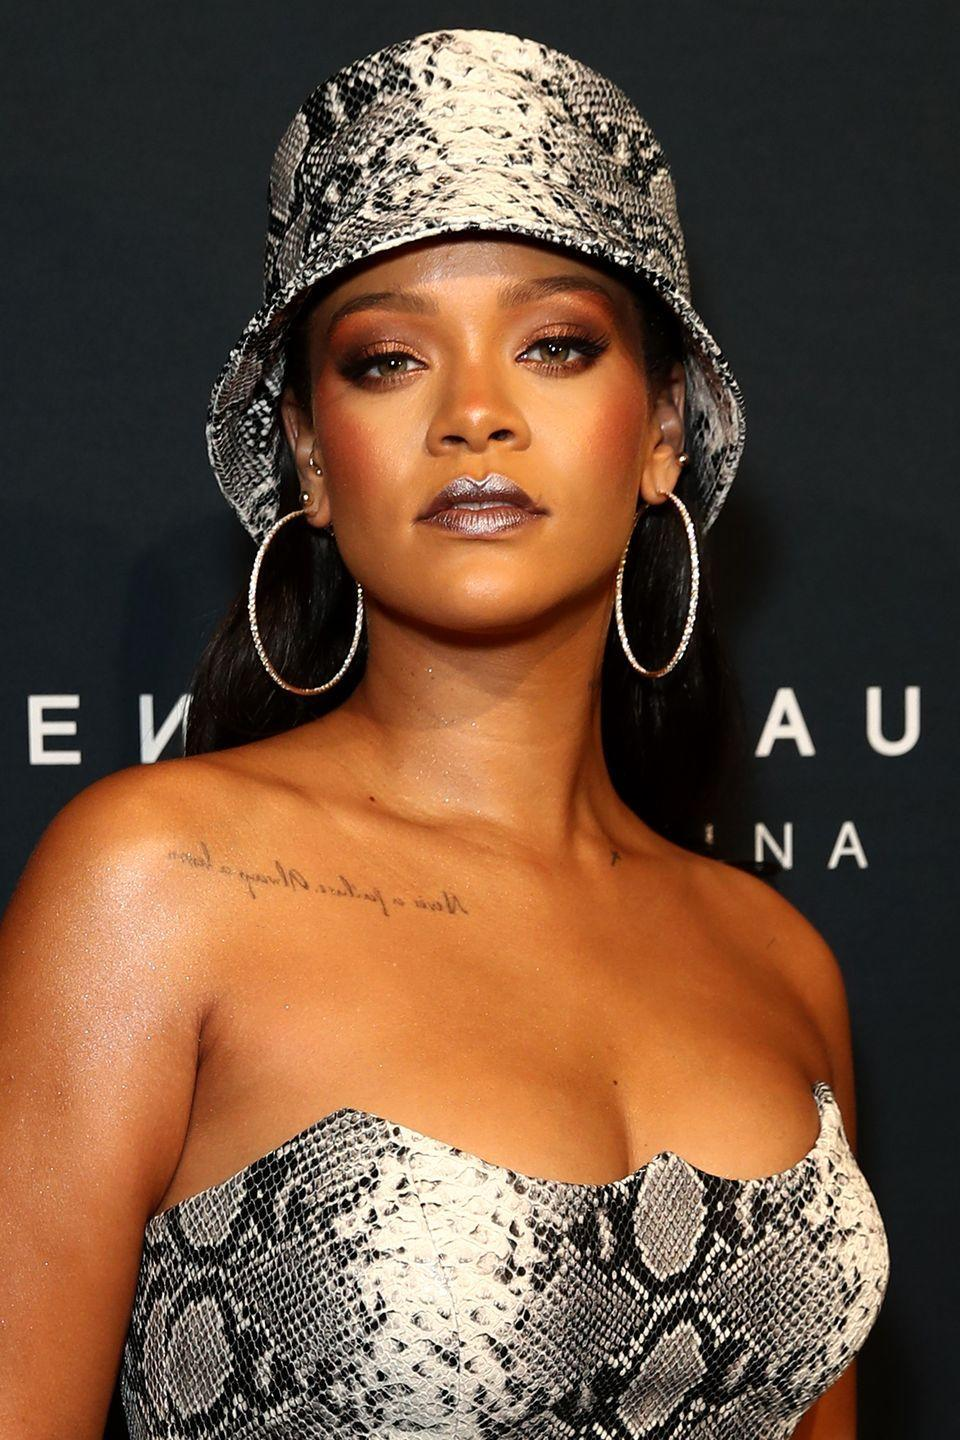 """<p><strong>Born</strong>: Robyn Rihanna Fenty</p><p>Musically, the """"Wild Thoughts"""" singer has always gone by her middle name, Rihanna. But the artist told <em><a href=""""https://www.rollingstone.com/music/news/rihanna-queen-of-pain-rolling-stones-2011-cover-story-20110606?page=3"""" rel=""""nofollow noopener"""" target=""""_blank"""" data-ylk=""""slk:Rolling Stone"""" class=""""link rapid-noclick-resp"""">Rolling Stone</a> </em>that her friends and family still call her Robyn, especially when they want to get her attention. """"I get kind of numb to hearing Rihanna, Rihanna, Rihanna,"""" she <a href=""""https://www.rollingstone.com/music/news/rihanna-queen-of-pain-rolling-stones-2011-cover-story-20110606?page=3"""" rel=""""nofollow noopener"""" target=""""_blank"""" data-ylk=""""slk:told"""" class=""""link rapid-noclick-resp"""">told</a> the publication. """"When I hear Robyn, I pay attention.""""</p>"""